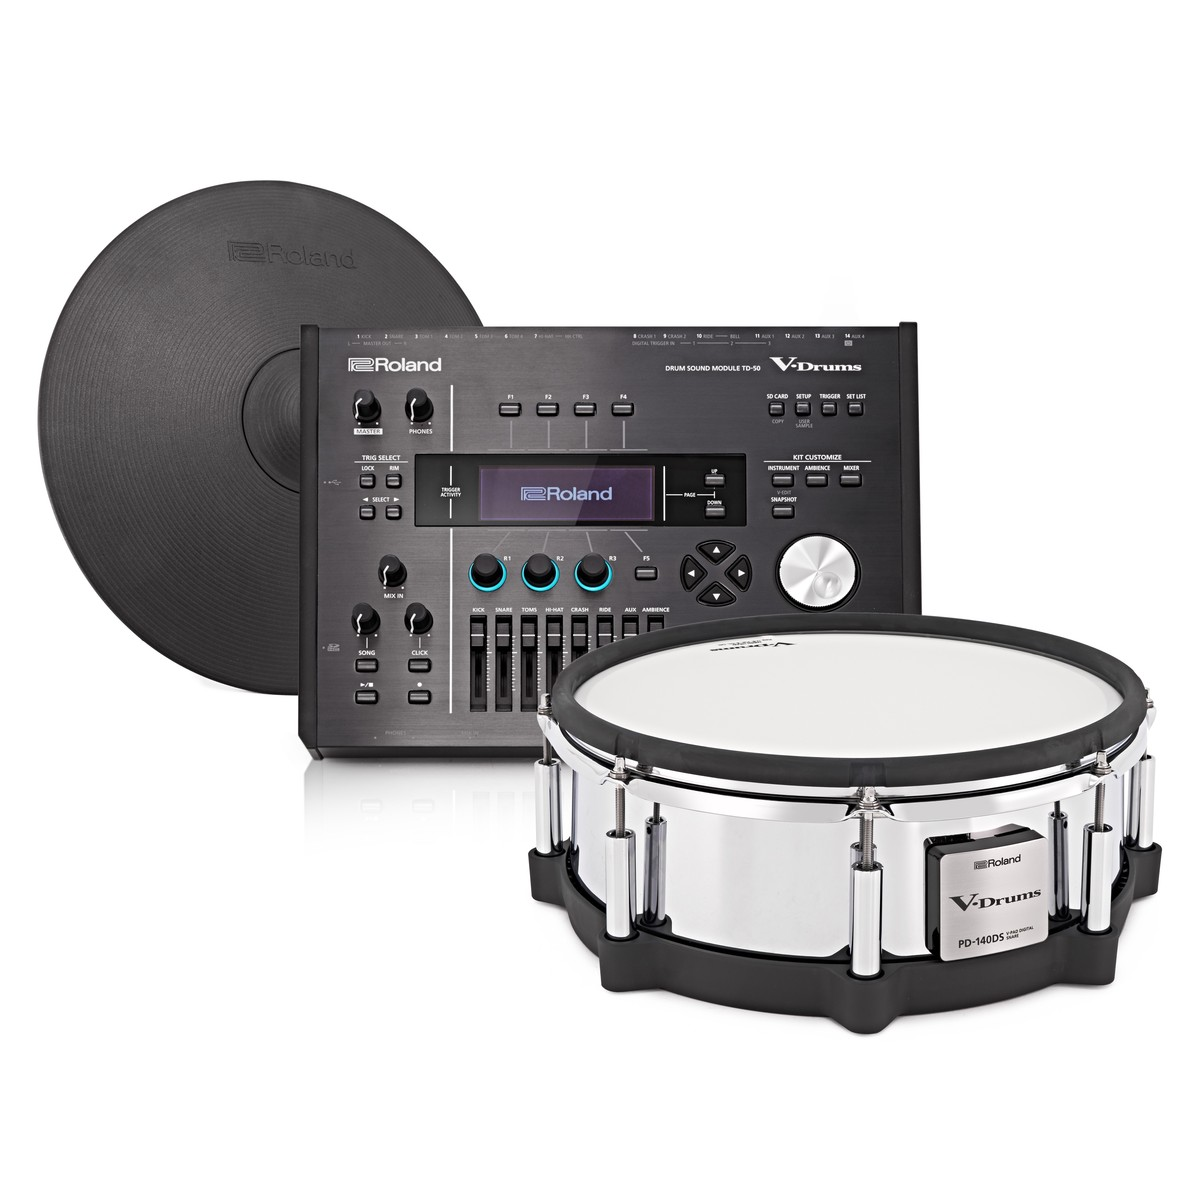 roland td 50 v drums digital upgrade pack at gear4music. Black Bedroom Furniture Sets. Home Design Ideas